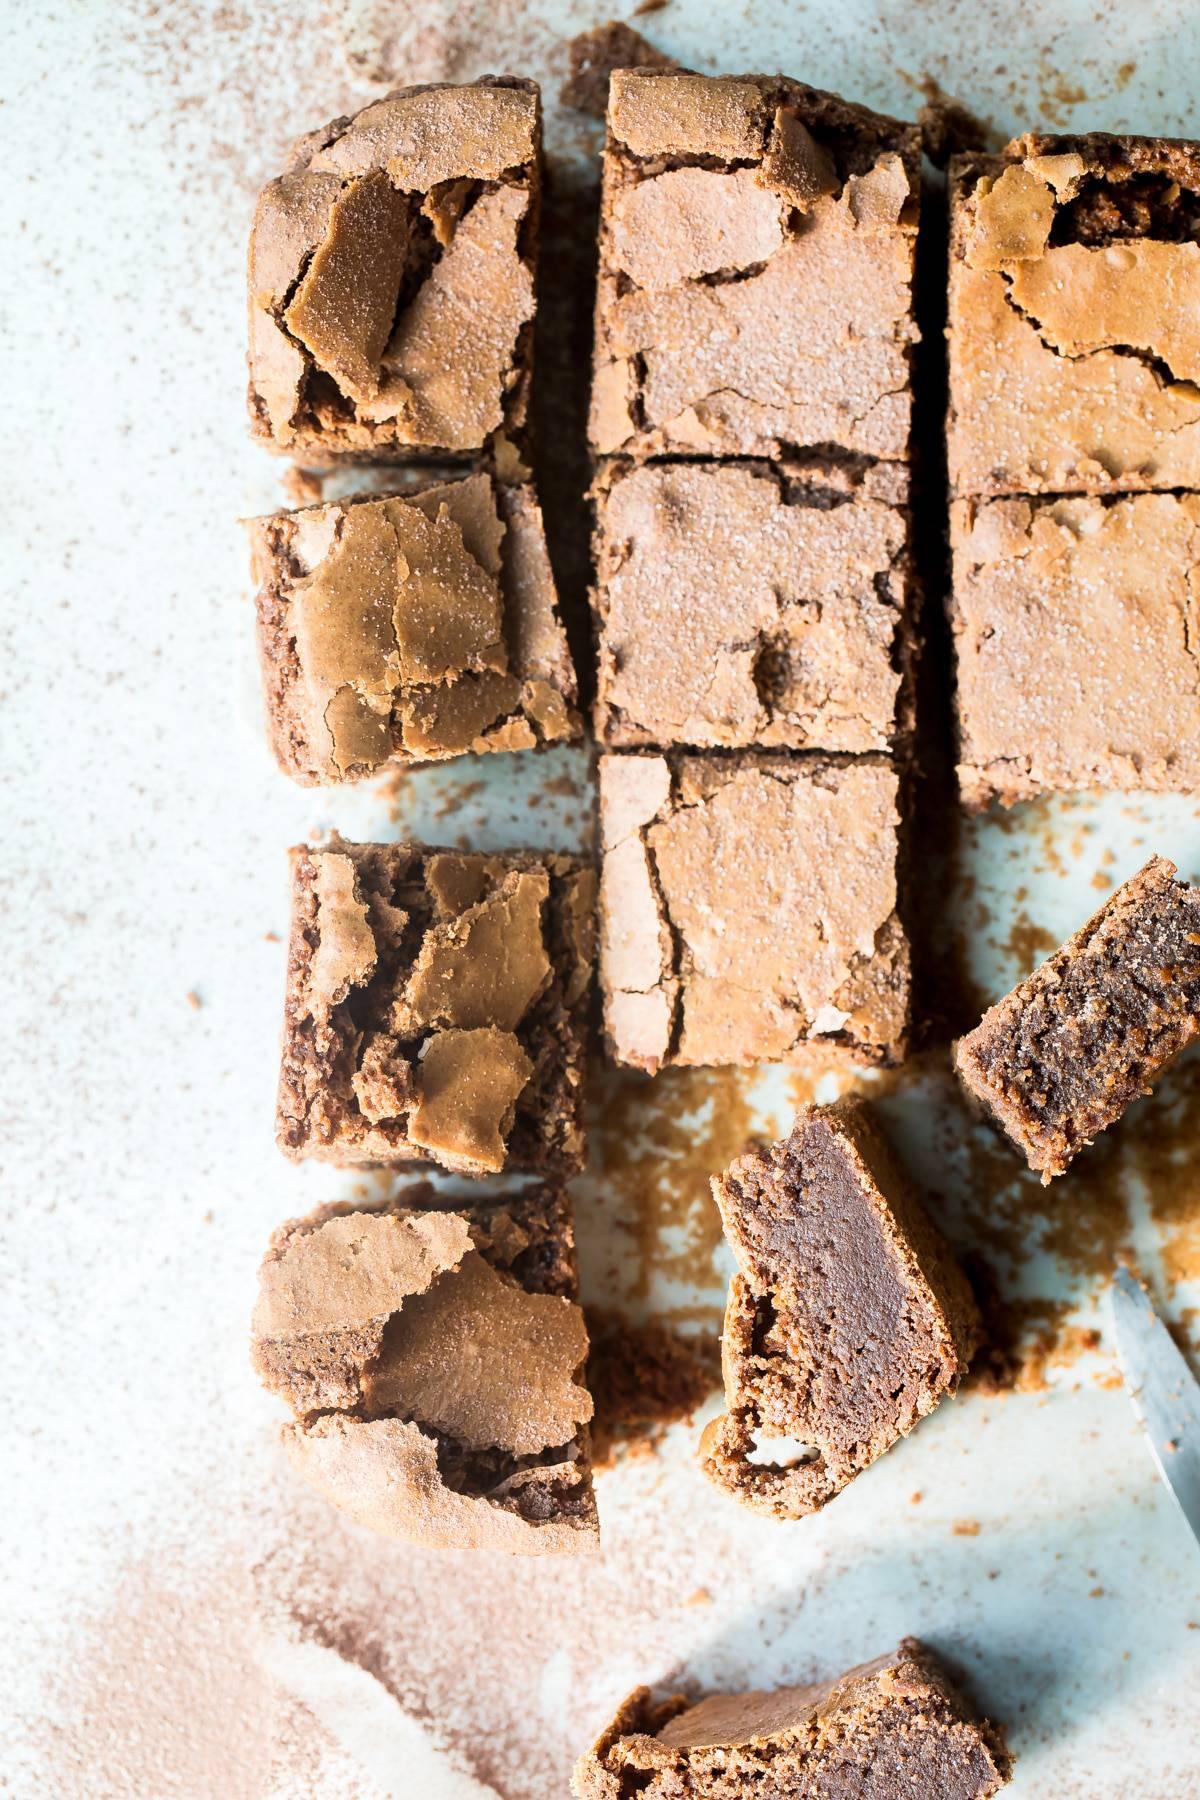 chocolate brownies sliced into squares